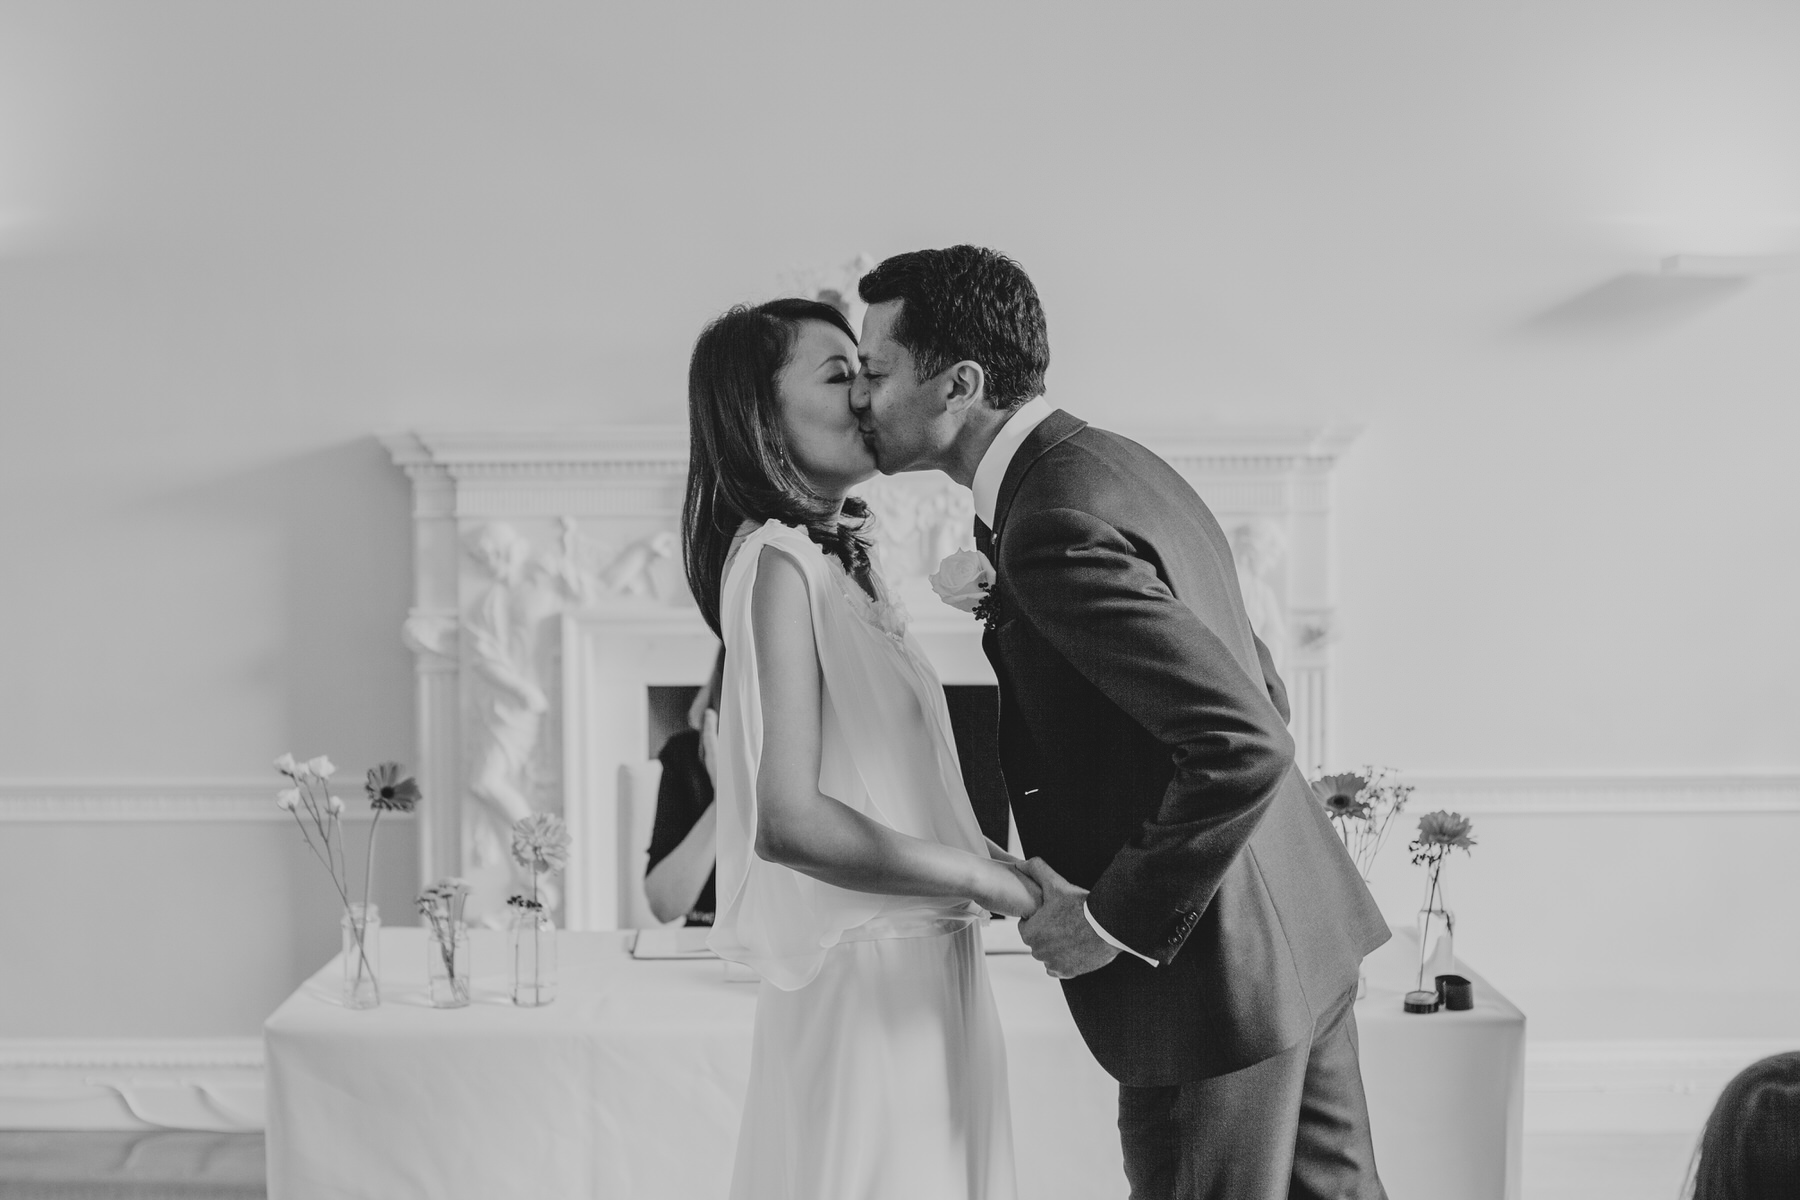 groom kisses bride as wedding ceremony concludes London documentary wedding photographer